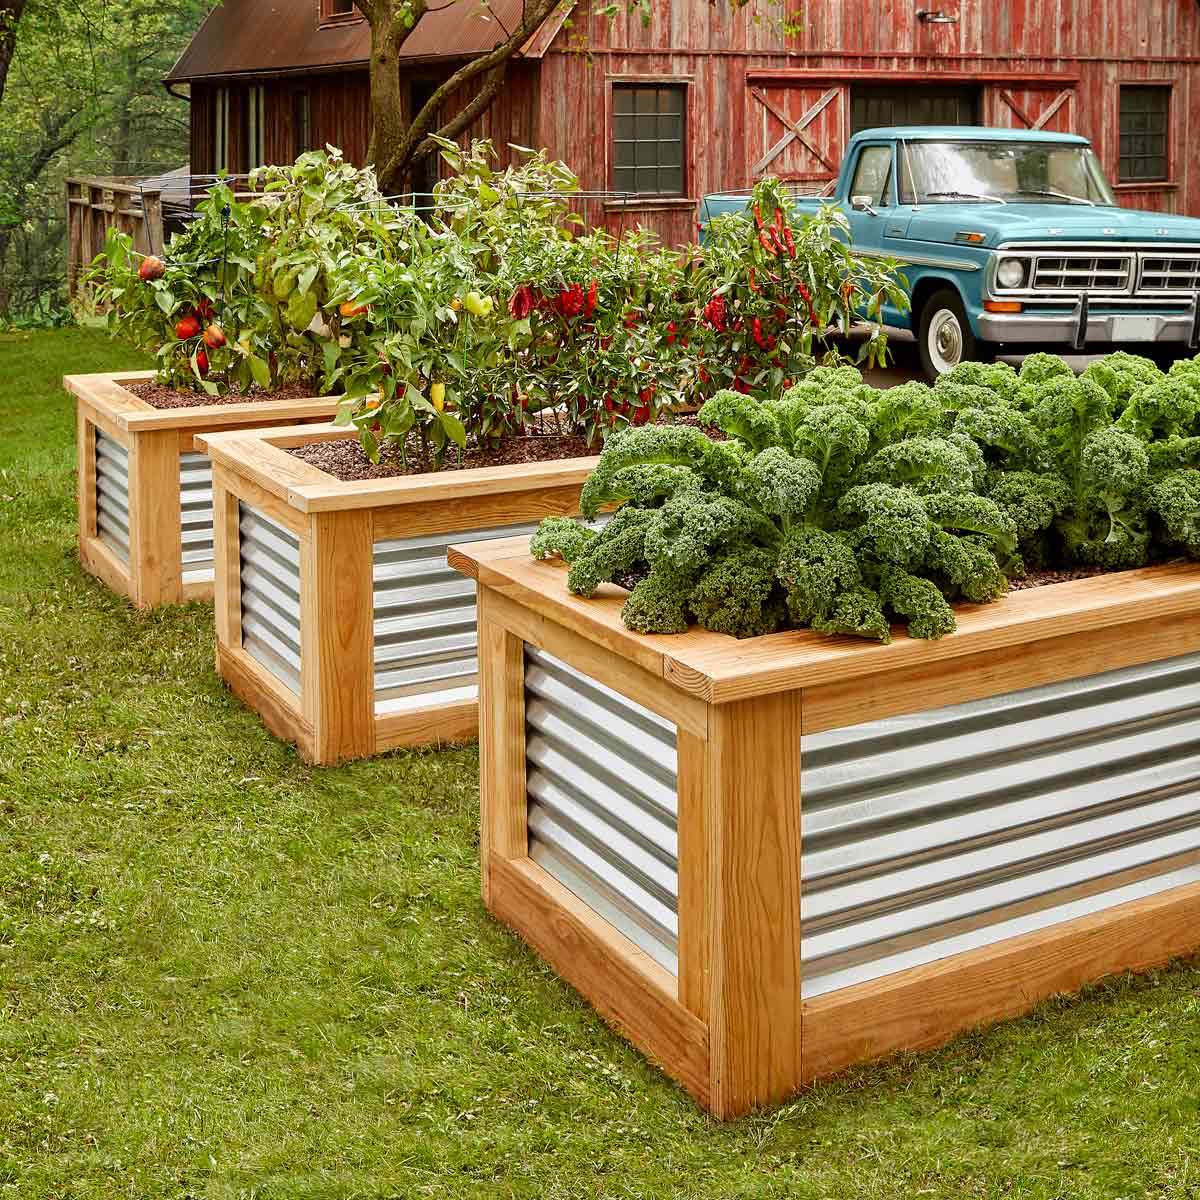 Wood and Metal DIY Raised Garden Bed